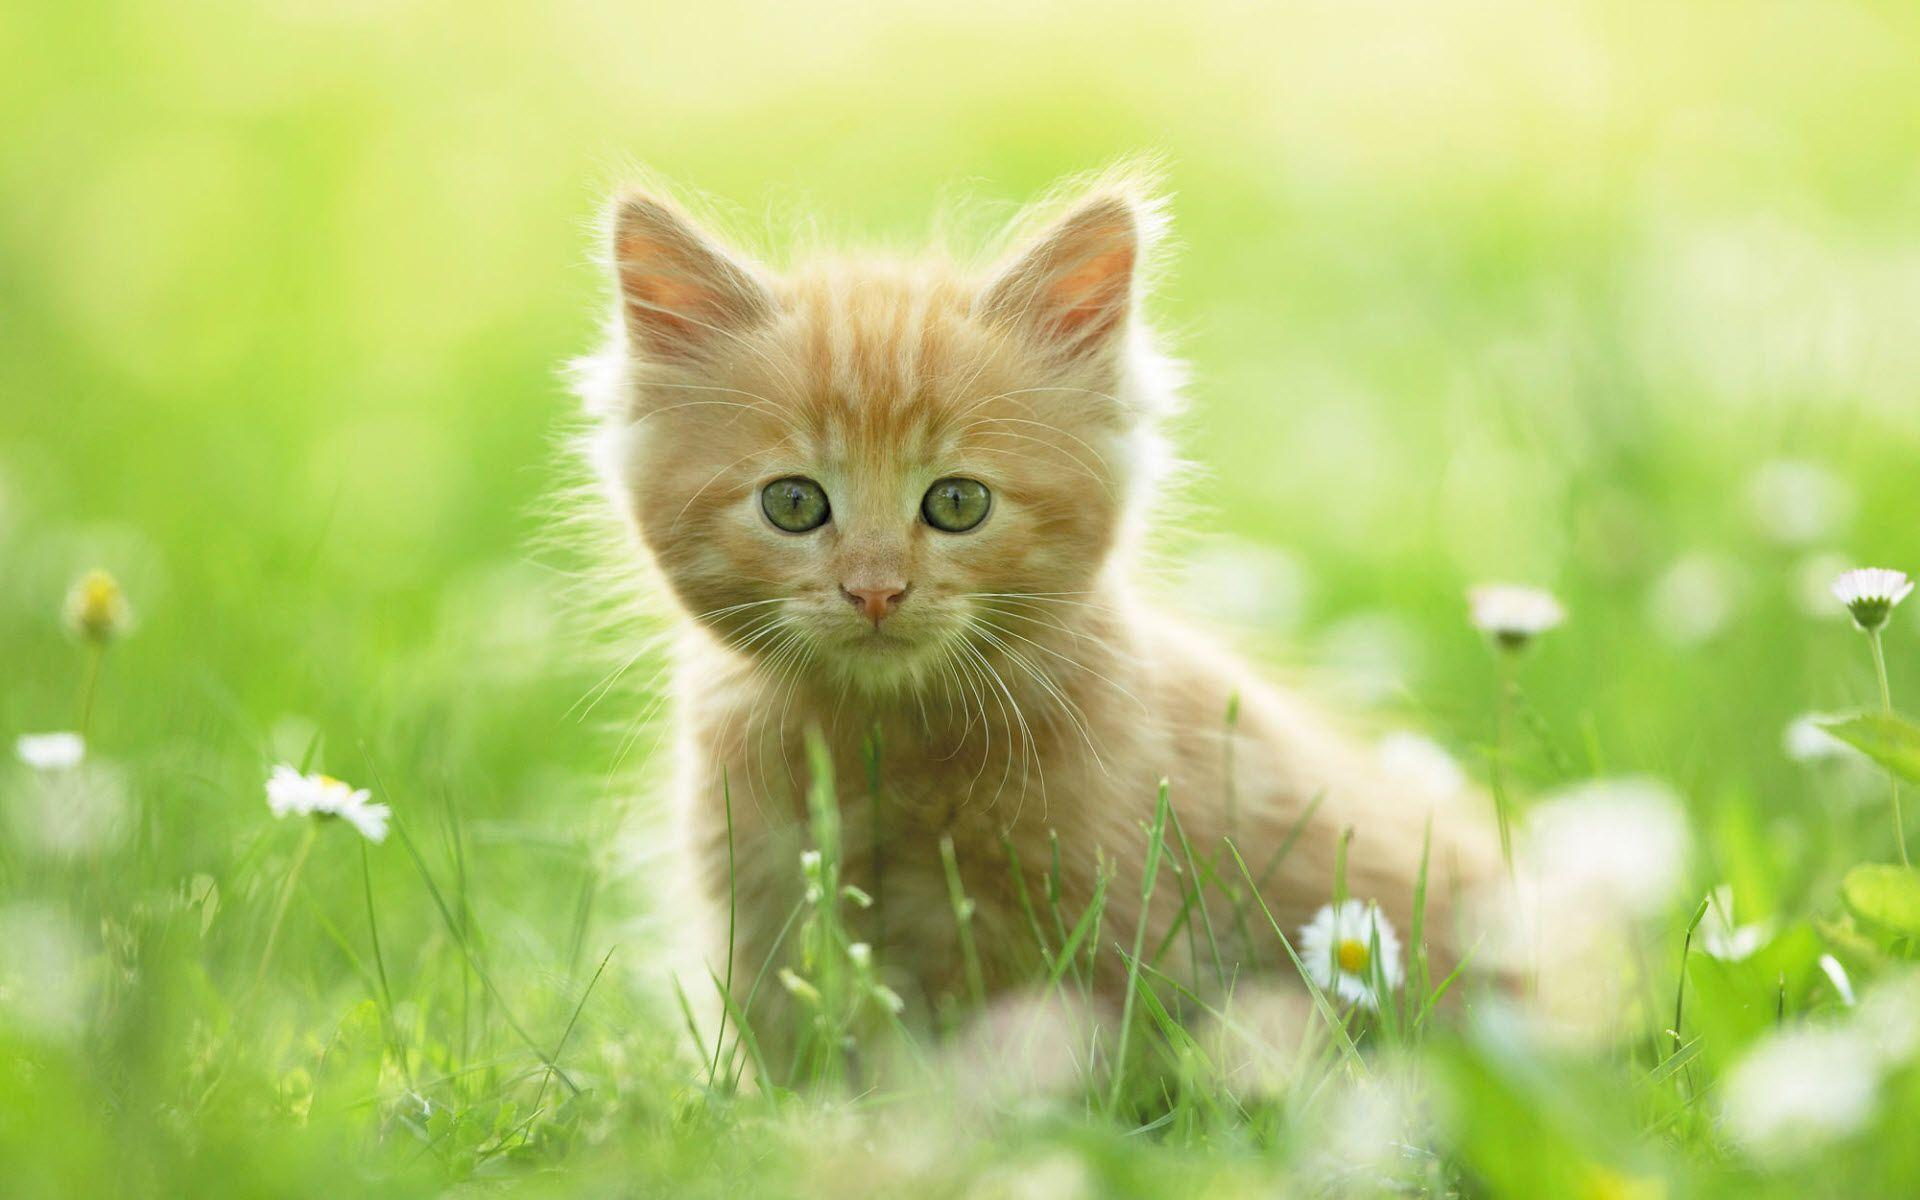 Cute Kitten Wallpapers | HD Wallpapers